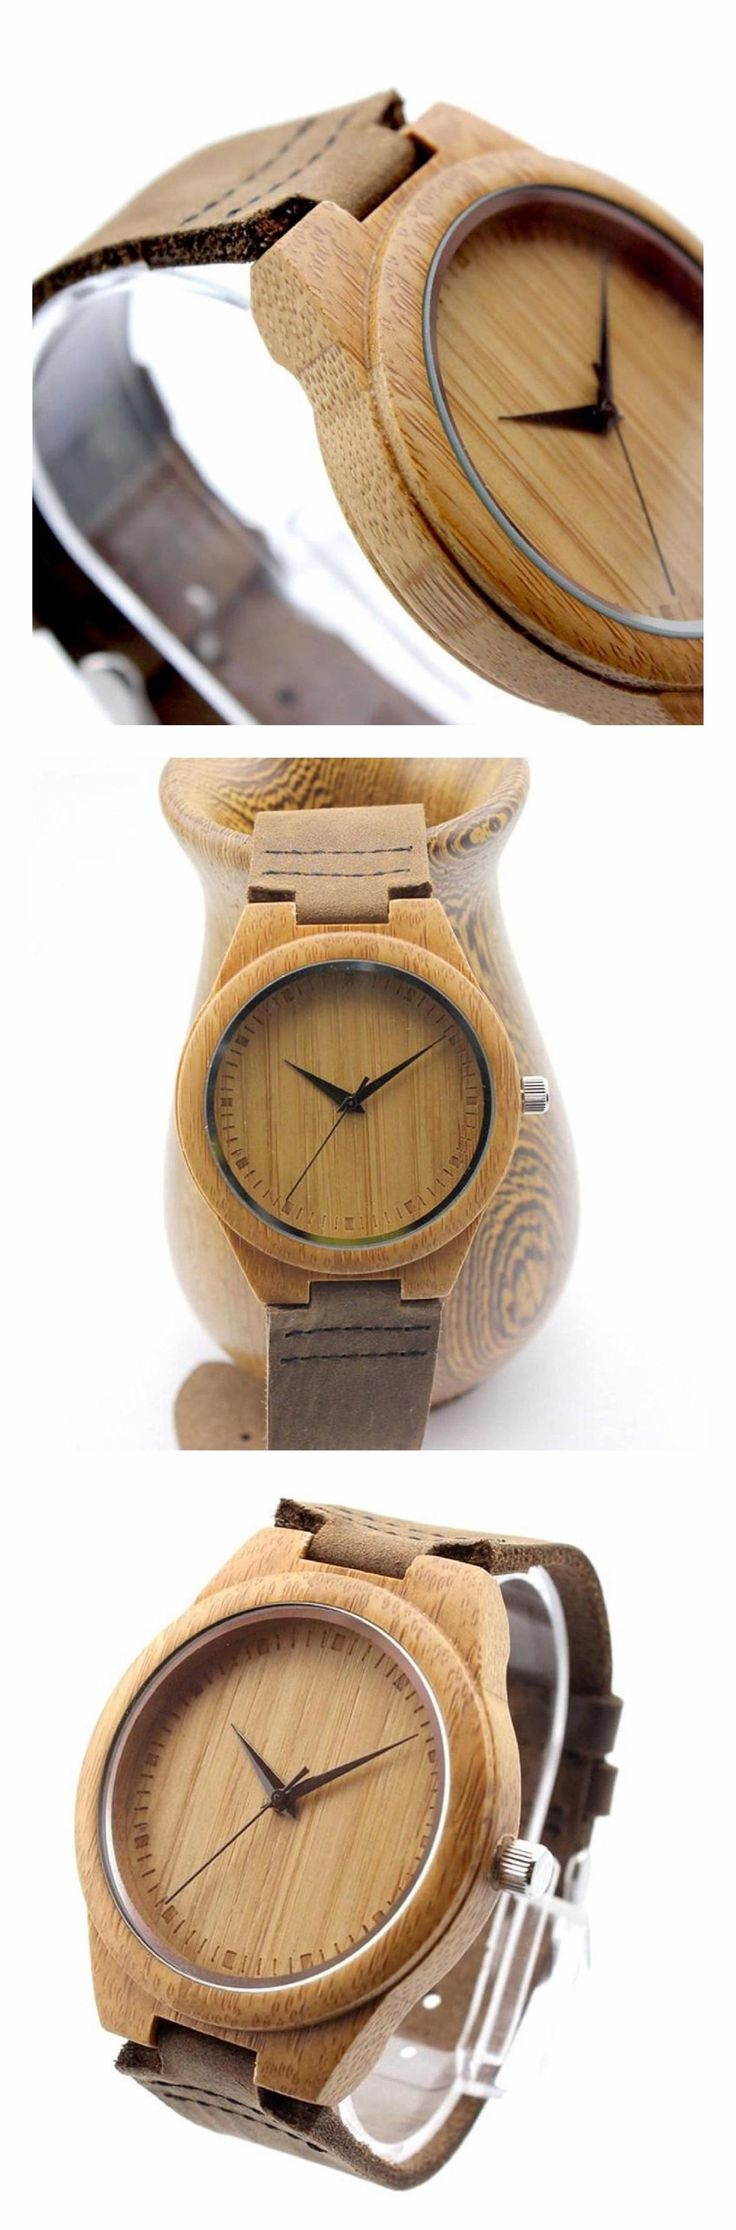 Bamboo, Bamboo and Bamboo: VOSICAR Retro Leather Fashion Bamboo Wooden Watch. Lightweight and comfortable on the wrist, Healthy and comfortable (Non-toxic Hypo-allergenic), Fashion design watch wood with genuine leather strap. #VOSICAR #KhaValeri http://www.pinterest.com/KhaValeri/    kha_amz_VOSbamboo1405_v15